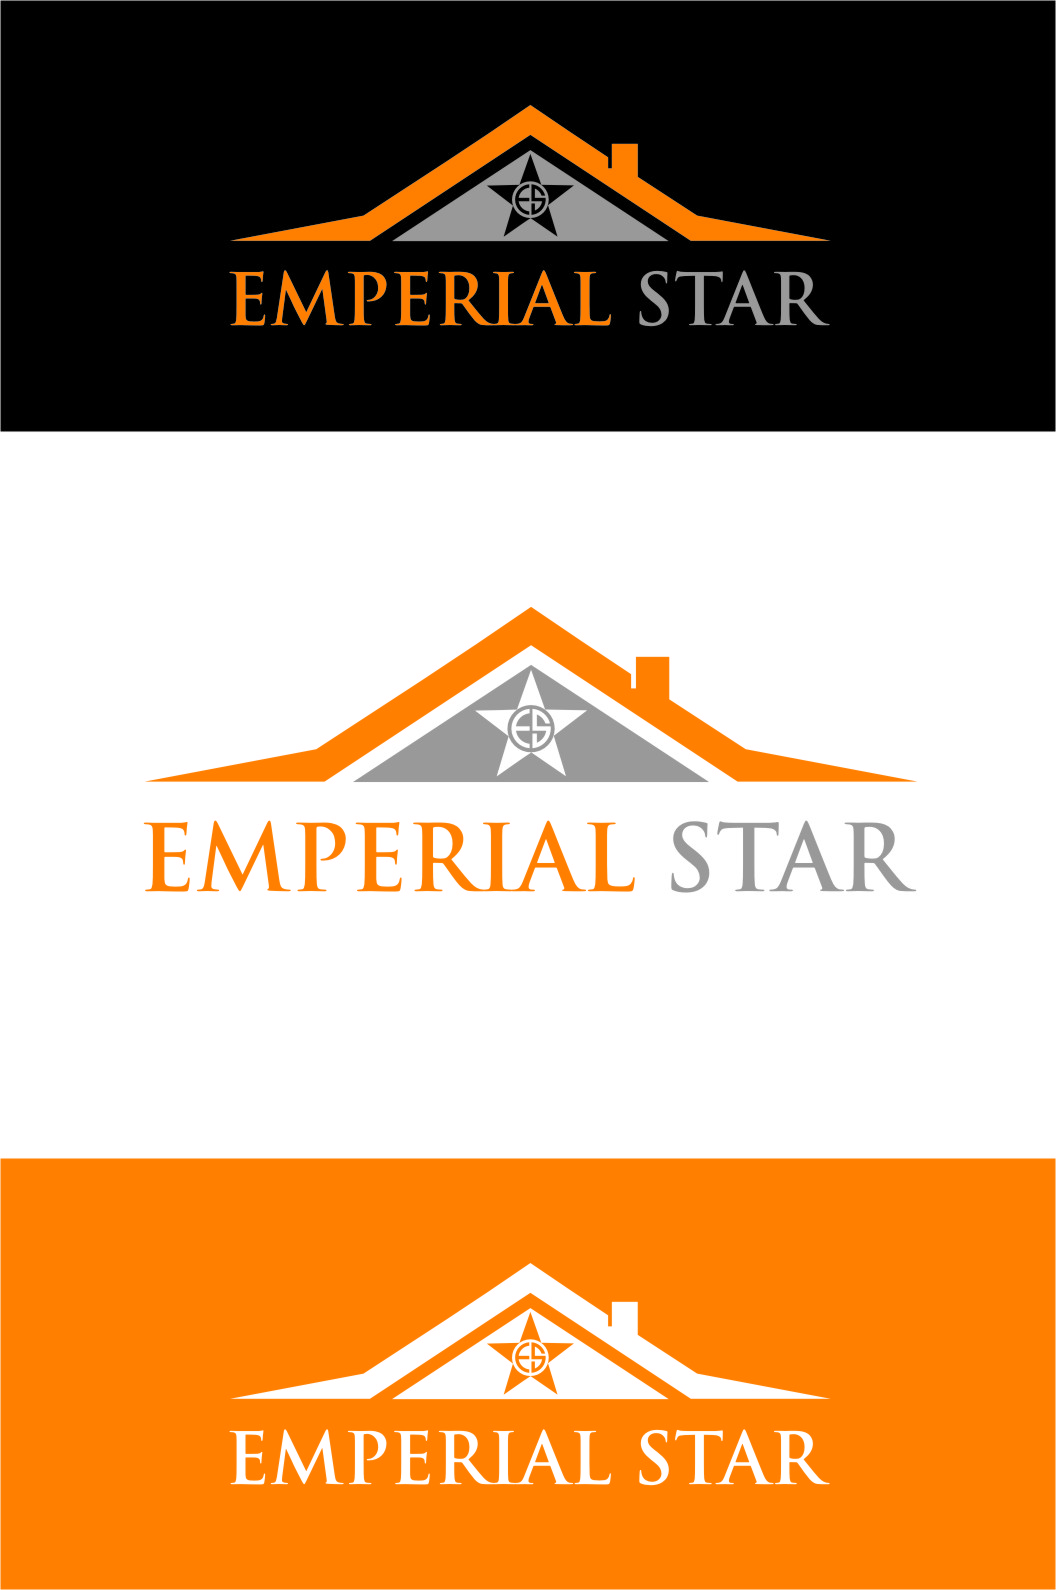 Logo Design by Ngepet_art - Entry No. 157 in the Logo Design Contest Emperial Star Logo Design.